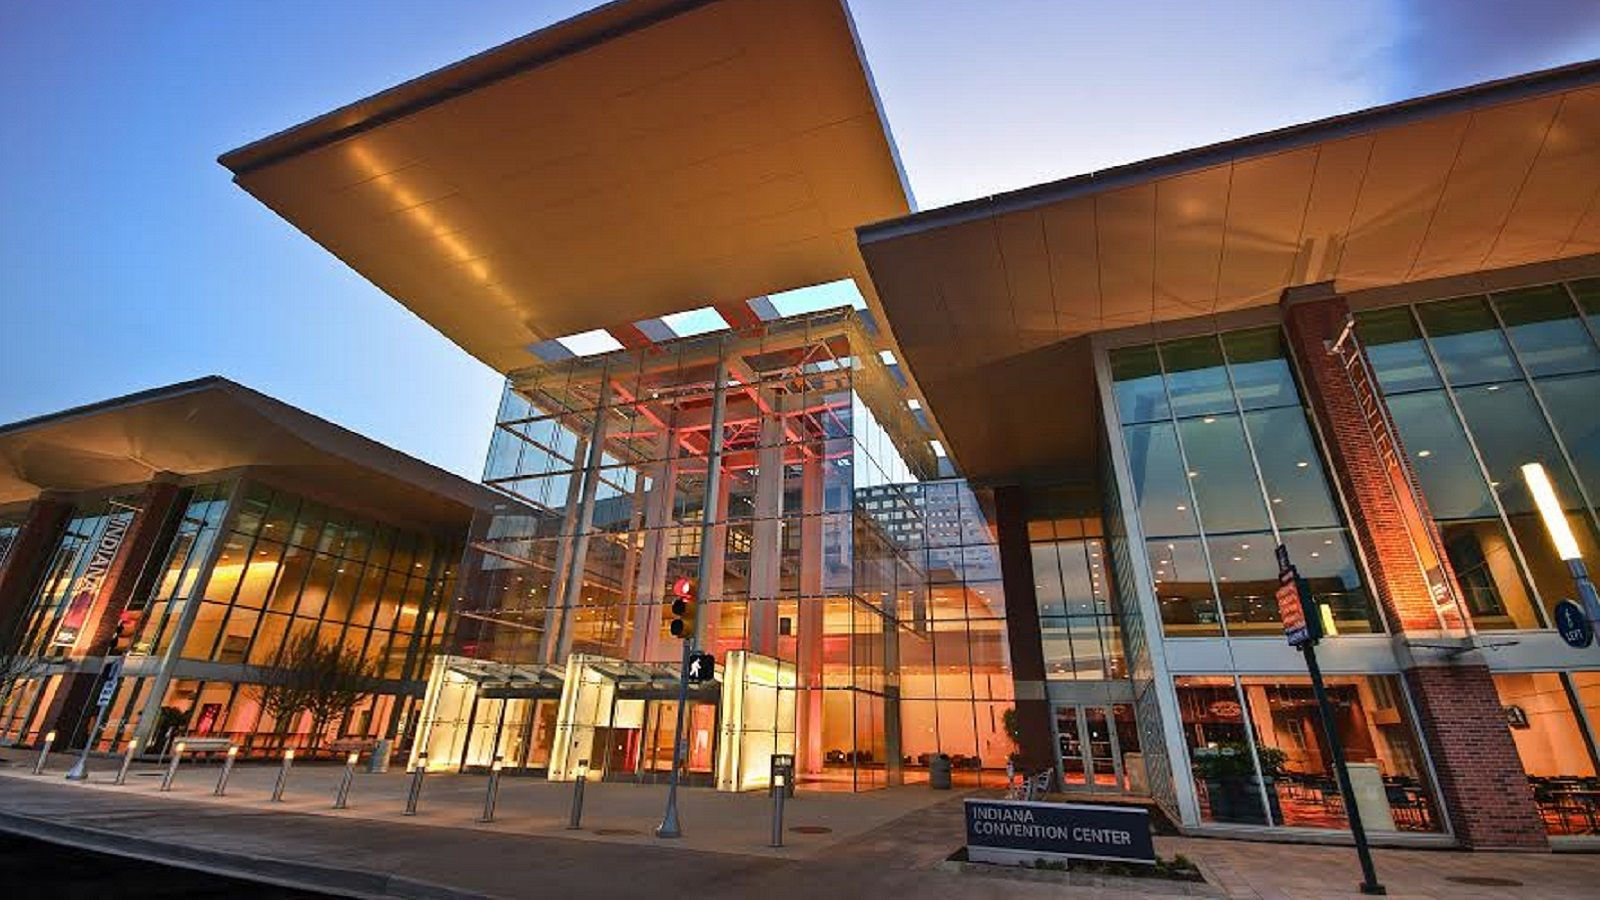 Things to do in Indianapolis - Indiana Convention Center